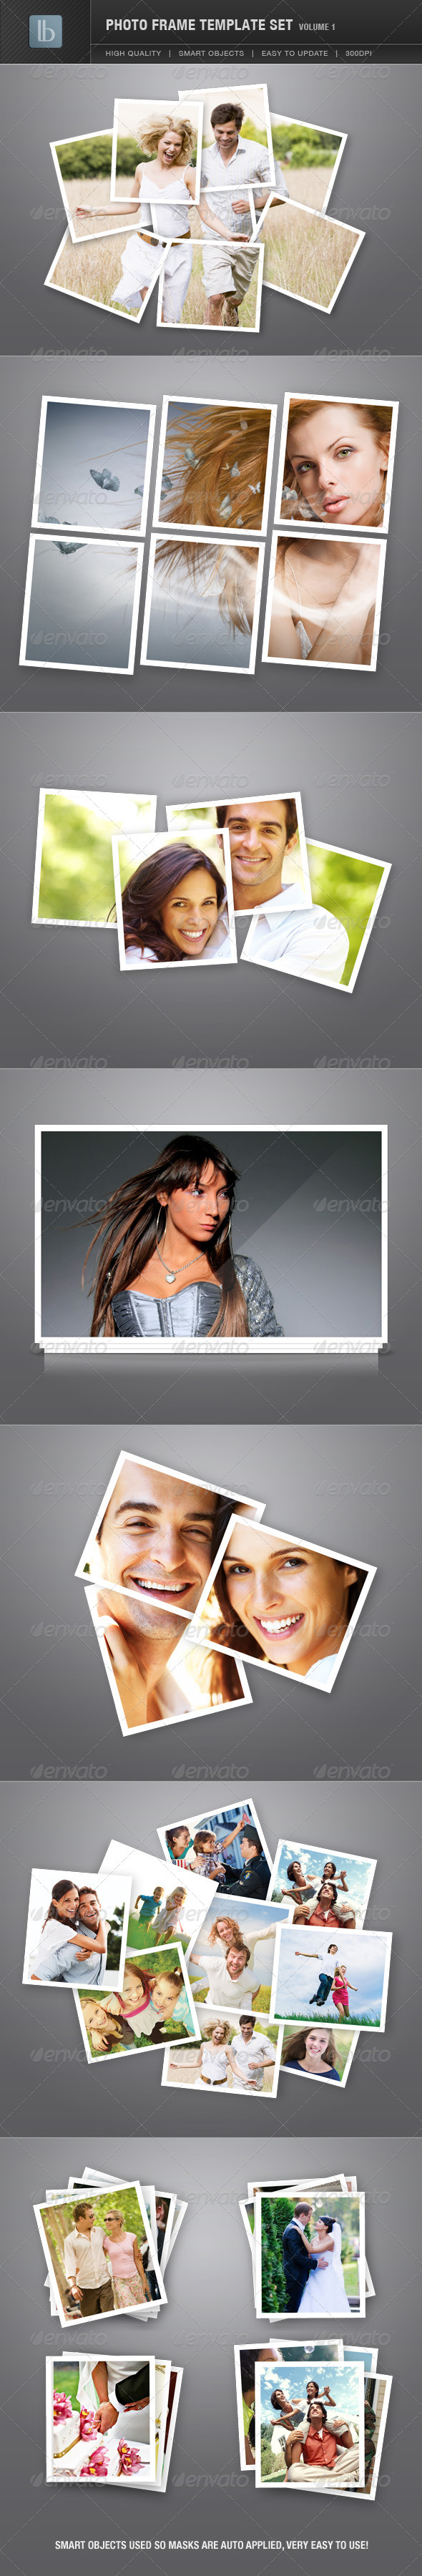 GraphicRiver Photo Frame Template Set Vol 1 1462781